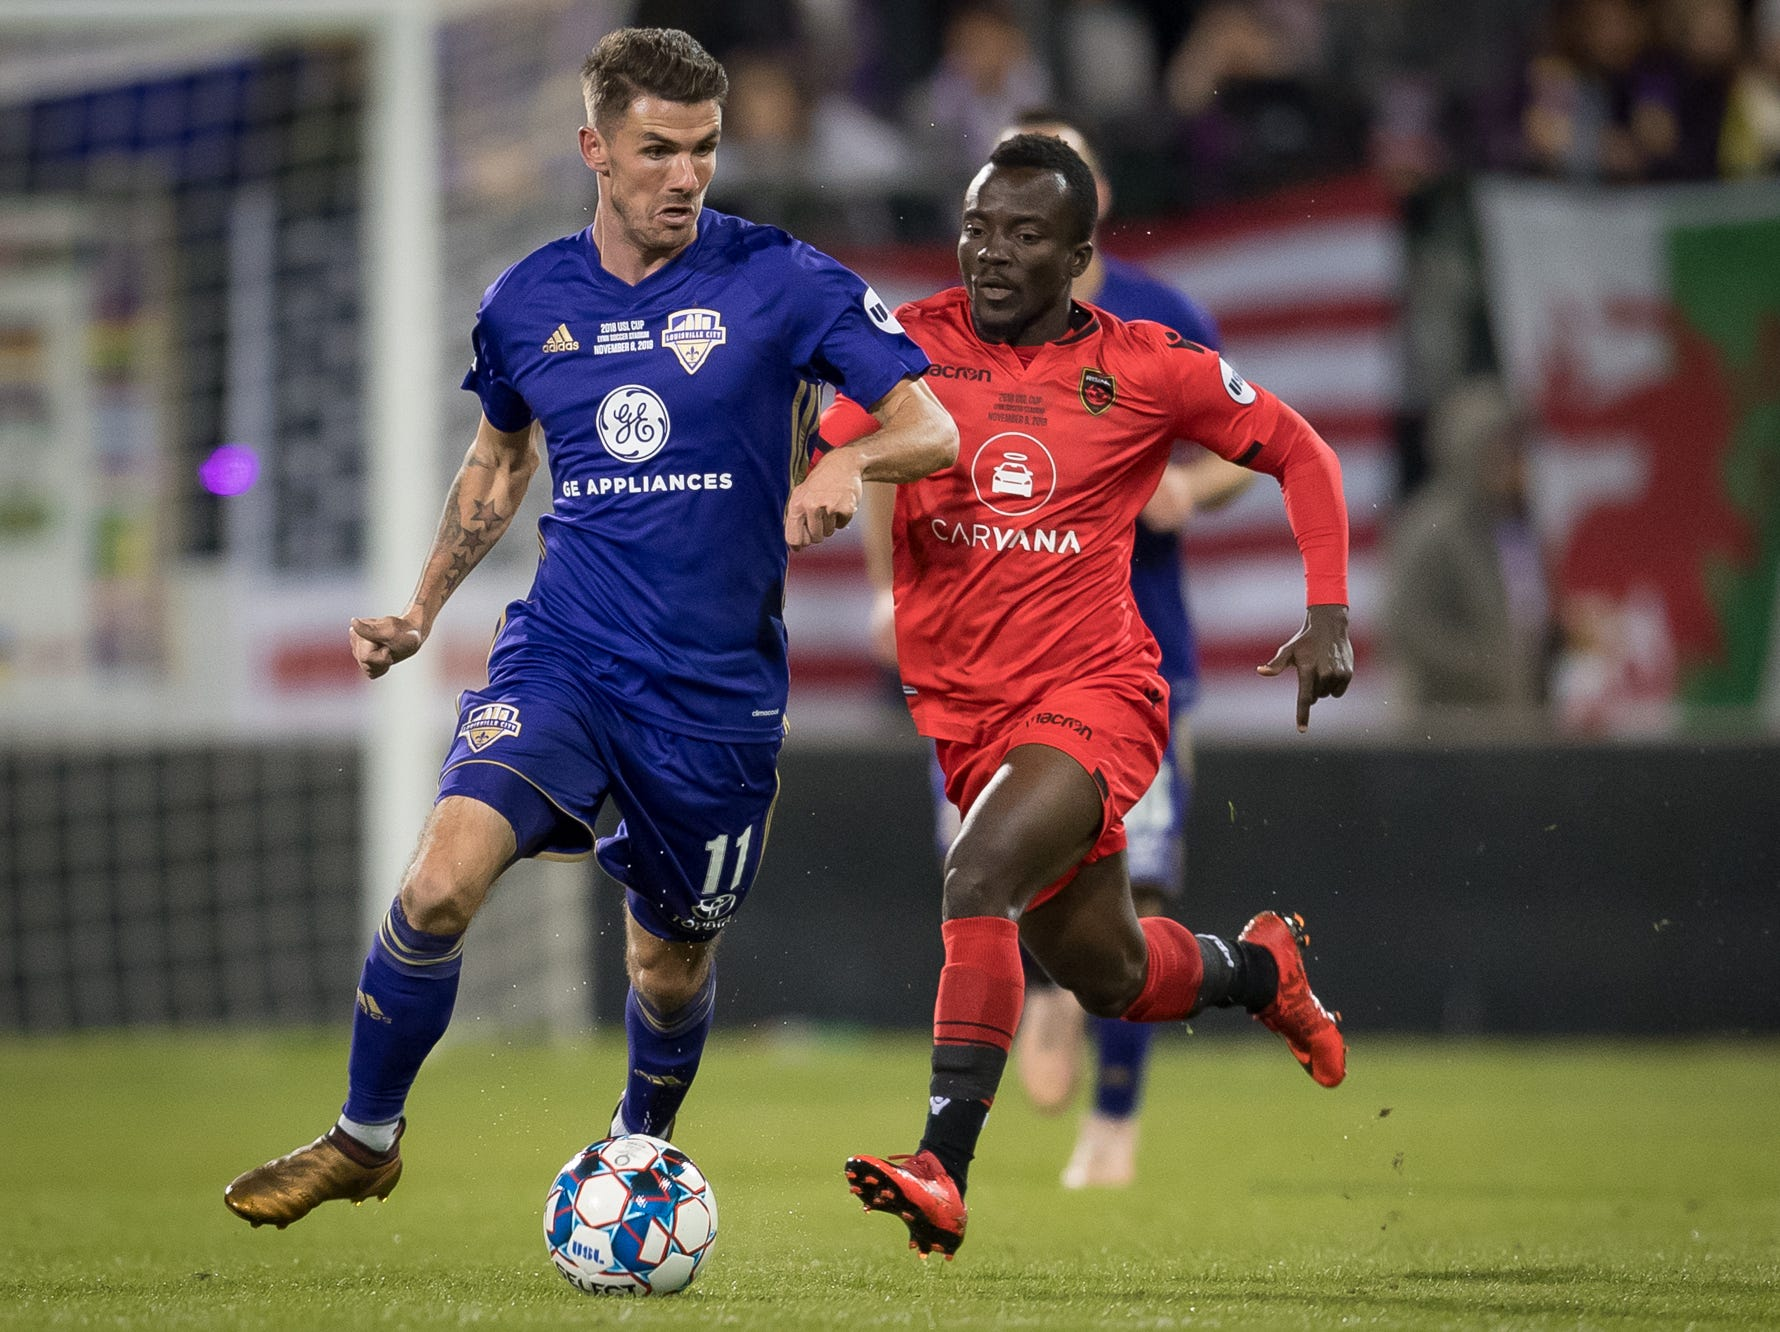 Louisville City FC midfielder Niall McCabe (11) plays against Phoenix Rising FC forward Solomon Asante (20) during the USL Cup final played at Lynn Stadium on the campus of the University of Louisville, Louisville, Ky., Thursday, Nov., 8, 2018. (PHOTO Bryan Woolston)